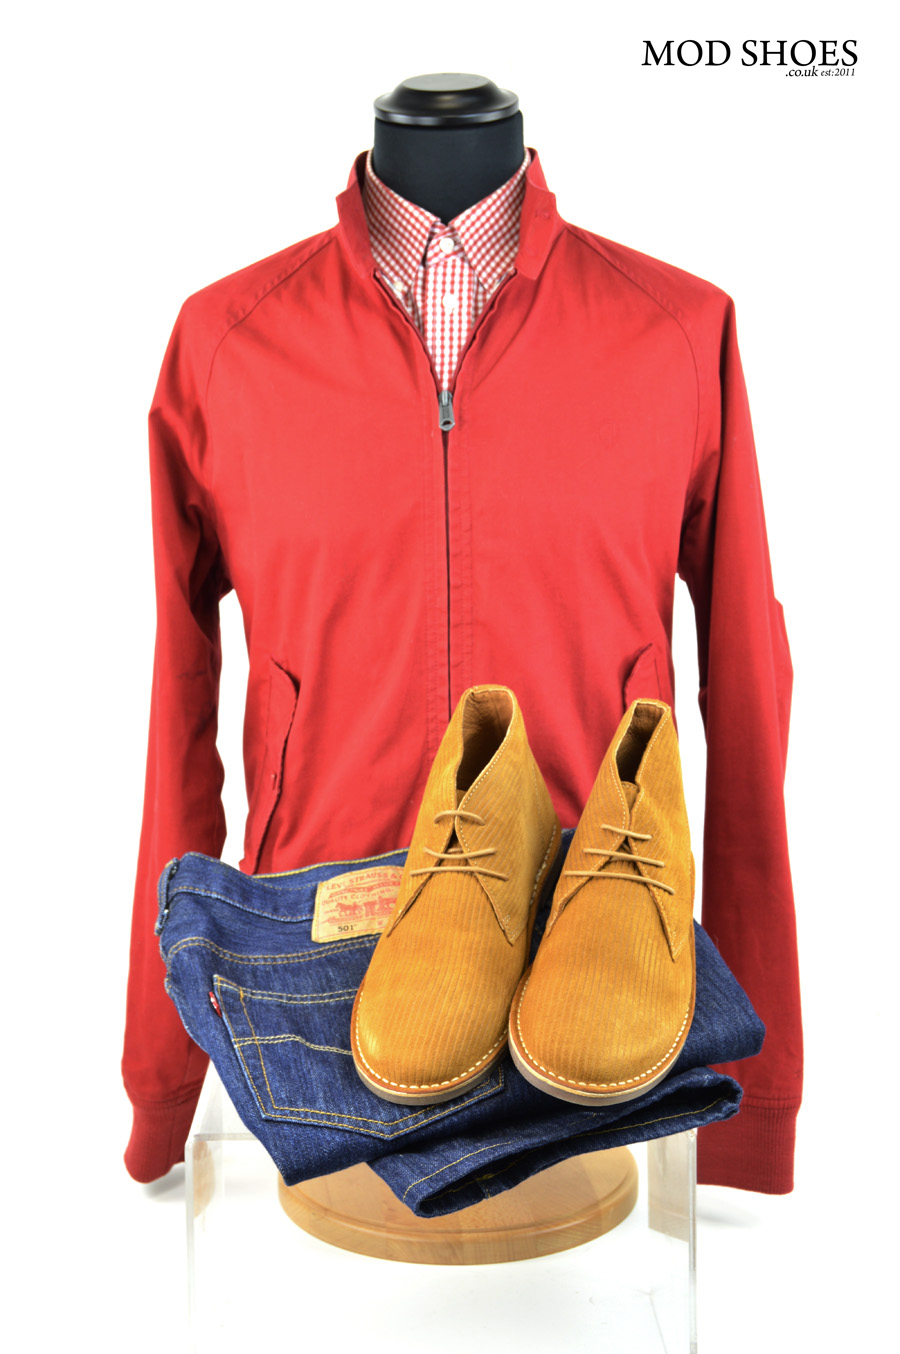 modshoes desert boots with red harrington